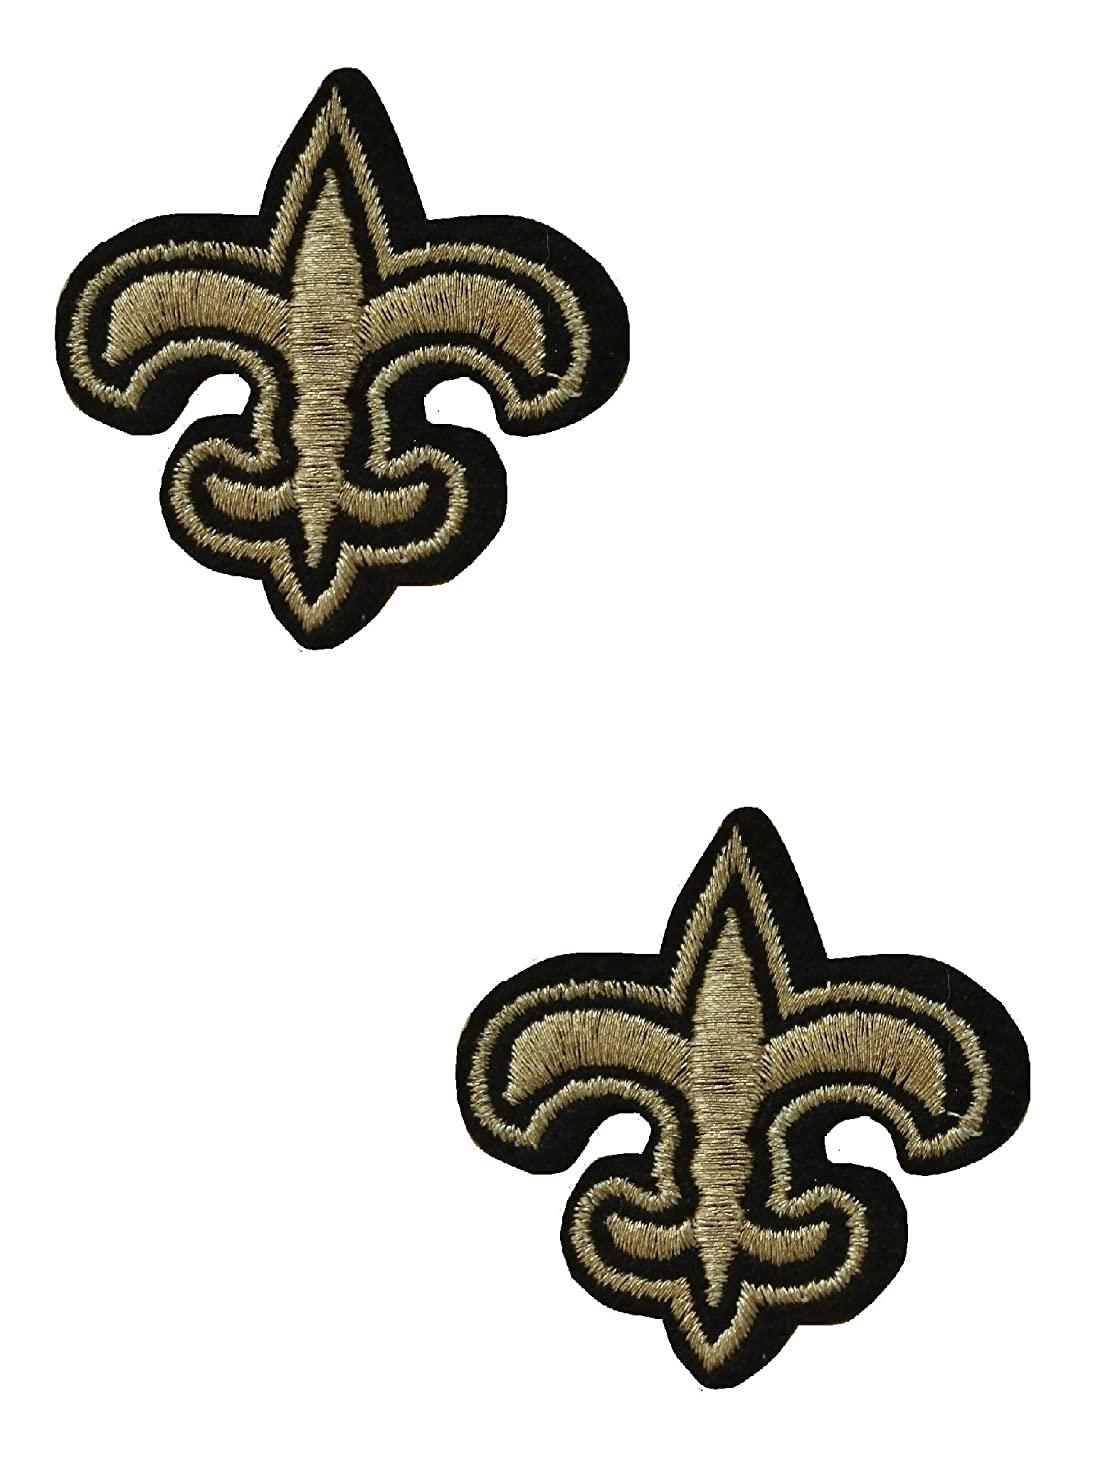 2 pieces BOY SCOUT Logo Iron On Patch Fabric Applique Motif Children Decal 1.8 x 1.8 inches (4.5 x 4.5 cm)